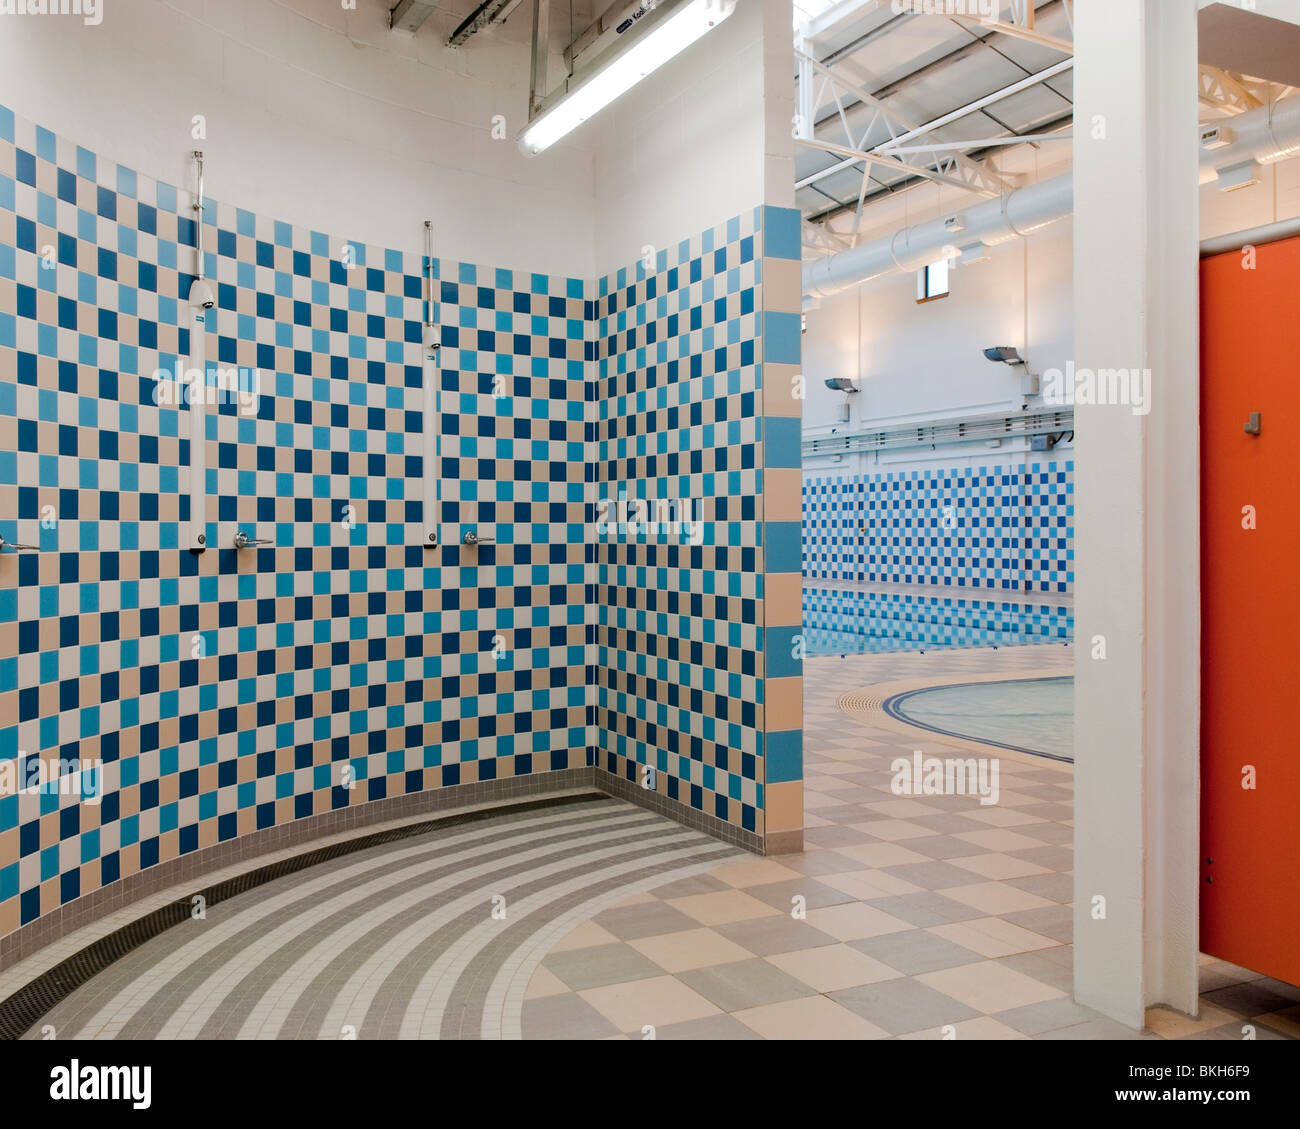 Showers at public swimming pool Stock Photo: 29267149 - Alamy